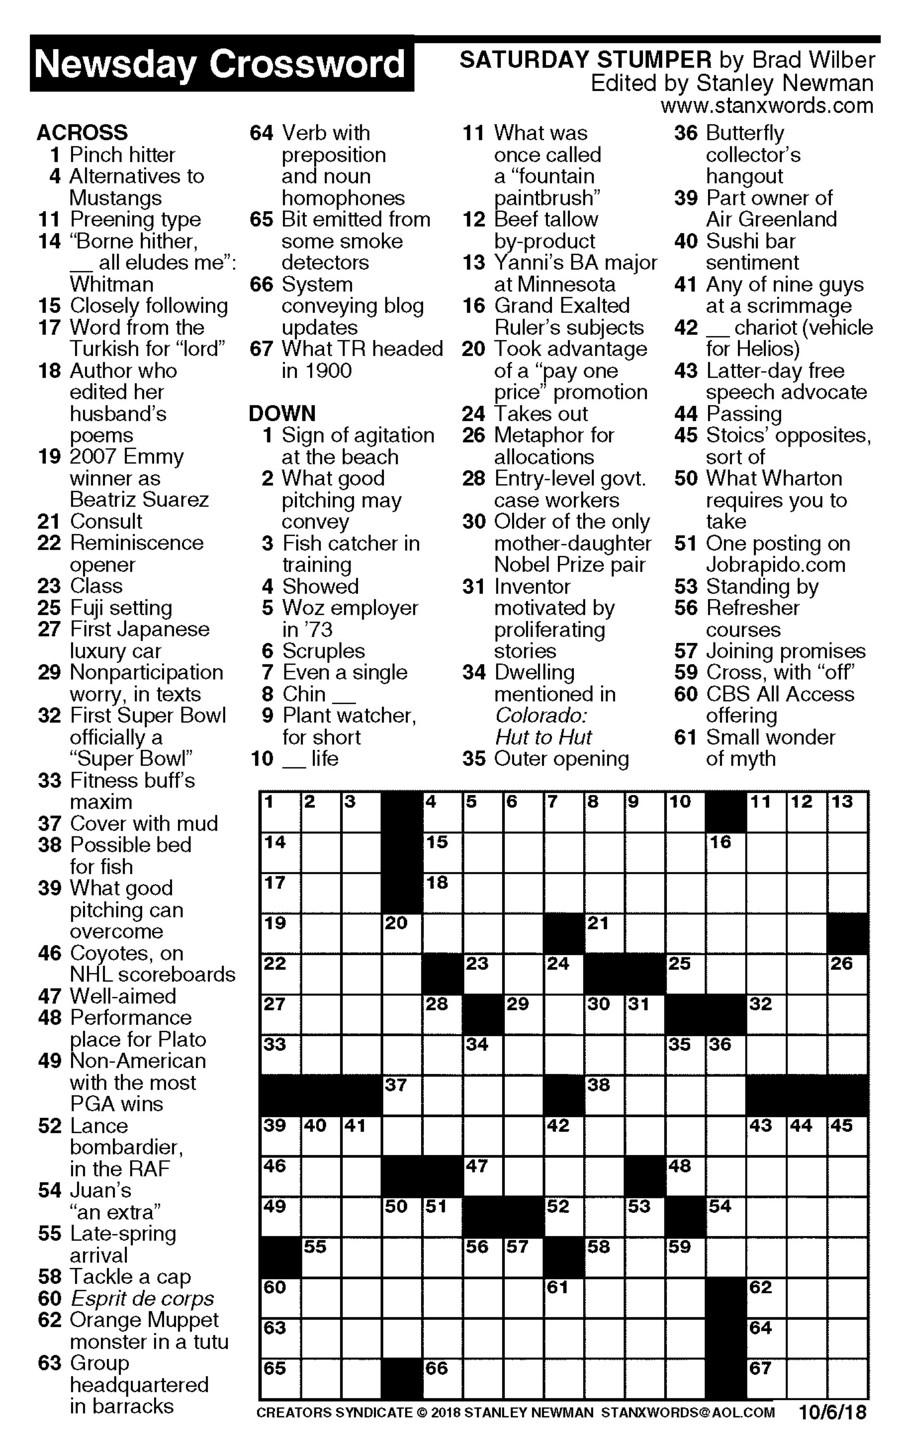 Newsday Crossword Puzzle For Oct 06, 2018,stanley Newman - Printable Sunday Crossword 2018